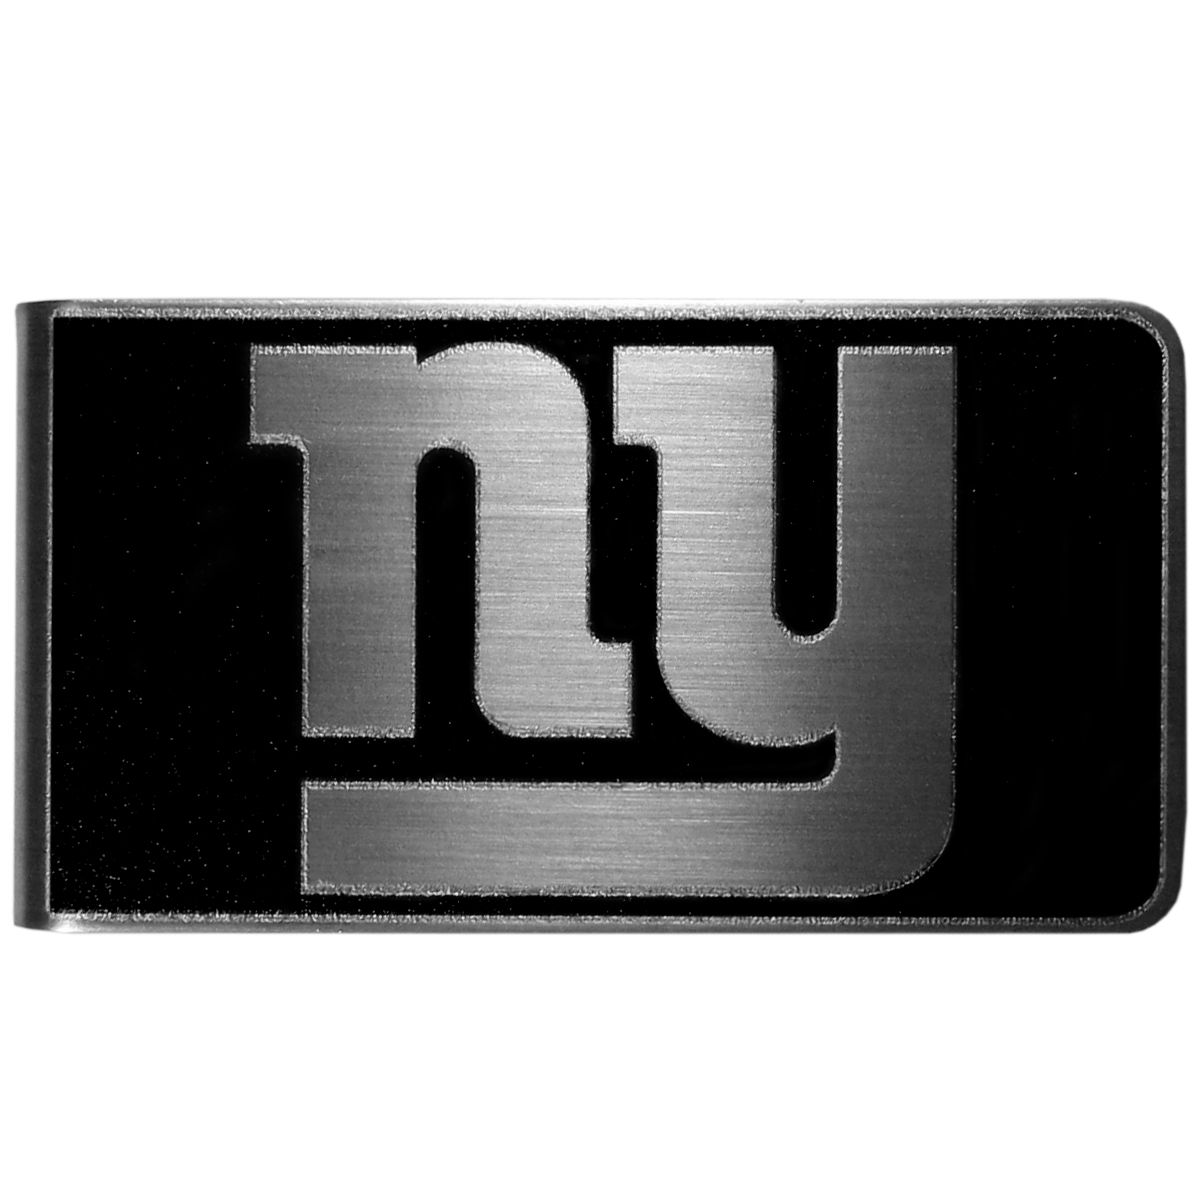 New York Giants Black and Steel Money Clip - Our monochromatic steel money clips have a classic style and superior quality. The strong, steel clip has a black overlay of the New York Giants logo over the brushed metal finish creating a stylish men's fashion accessory that would make any fan proud.